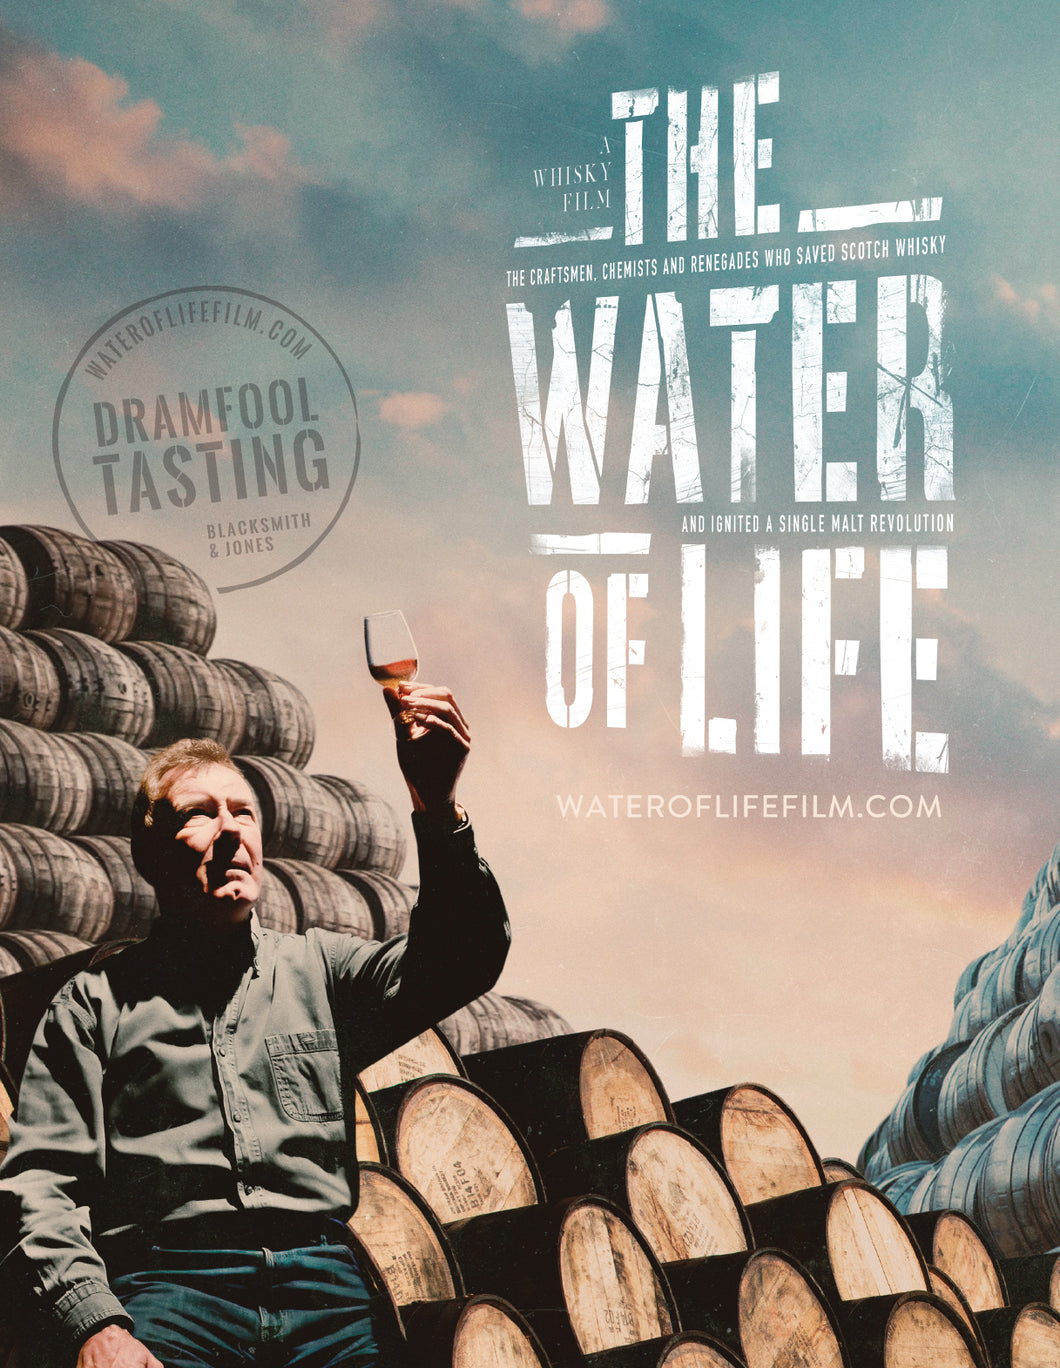 The Water of Life - tasting kit